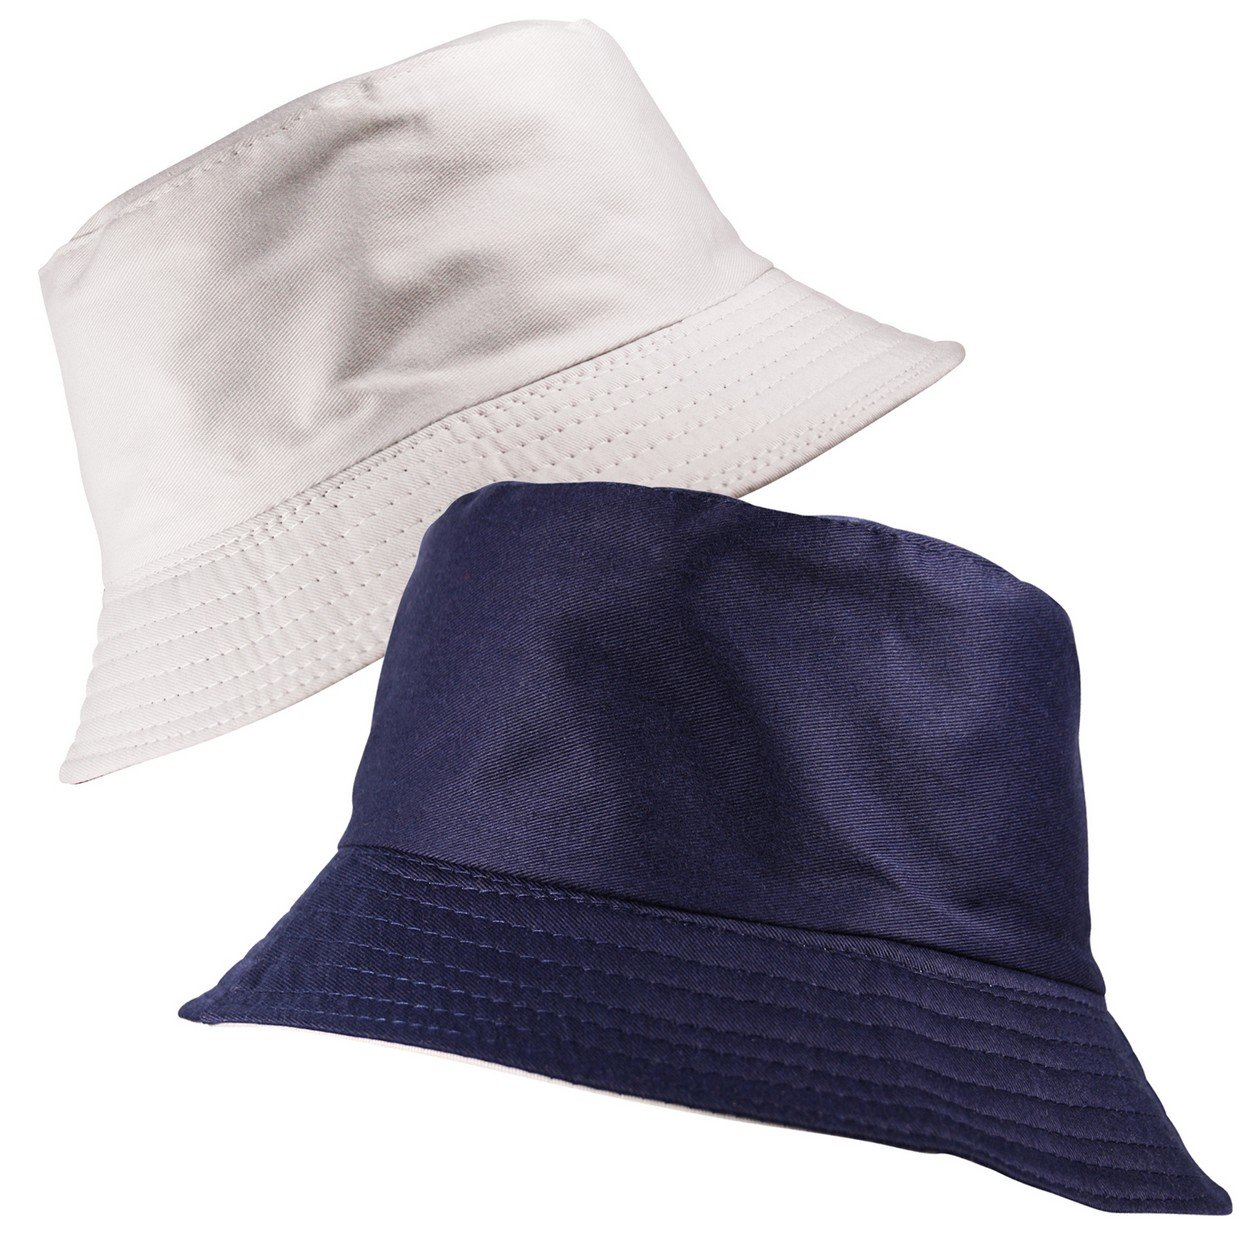 Classic Reversible Bucket Bush Hat 2 in 1 Plain Boonie Sun Unisex Mens Womens in Multiple Colours